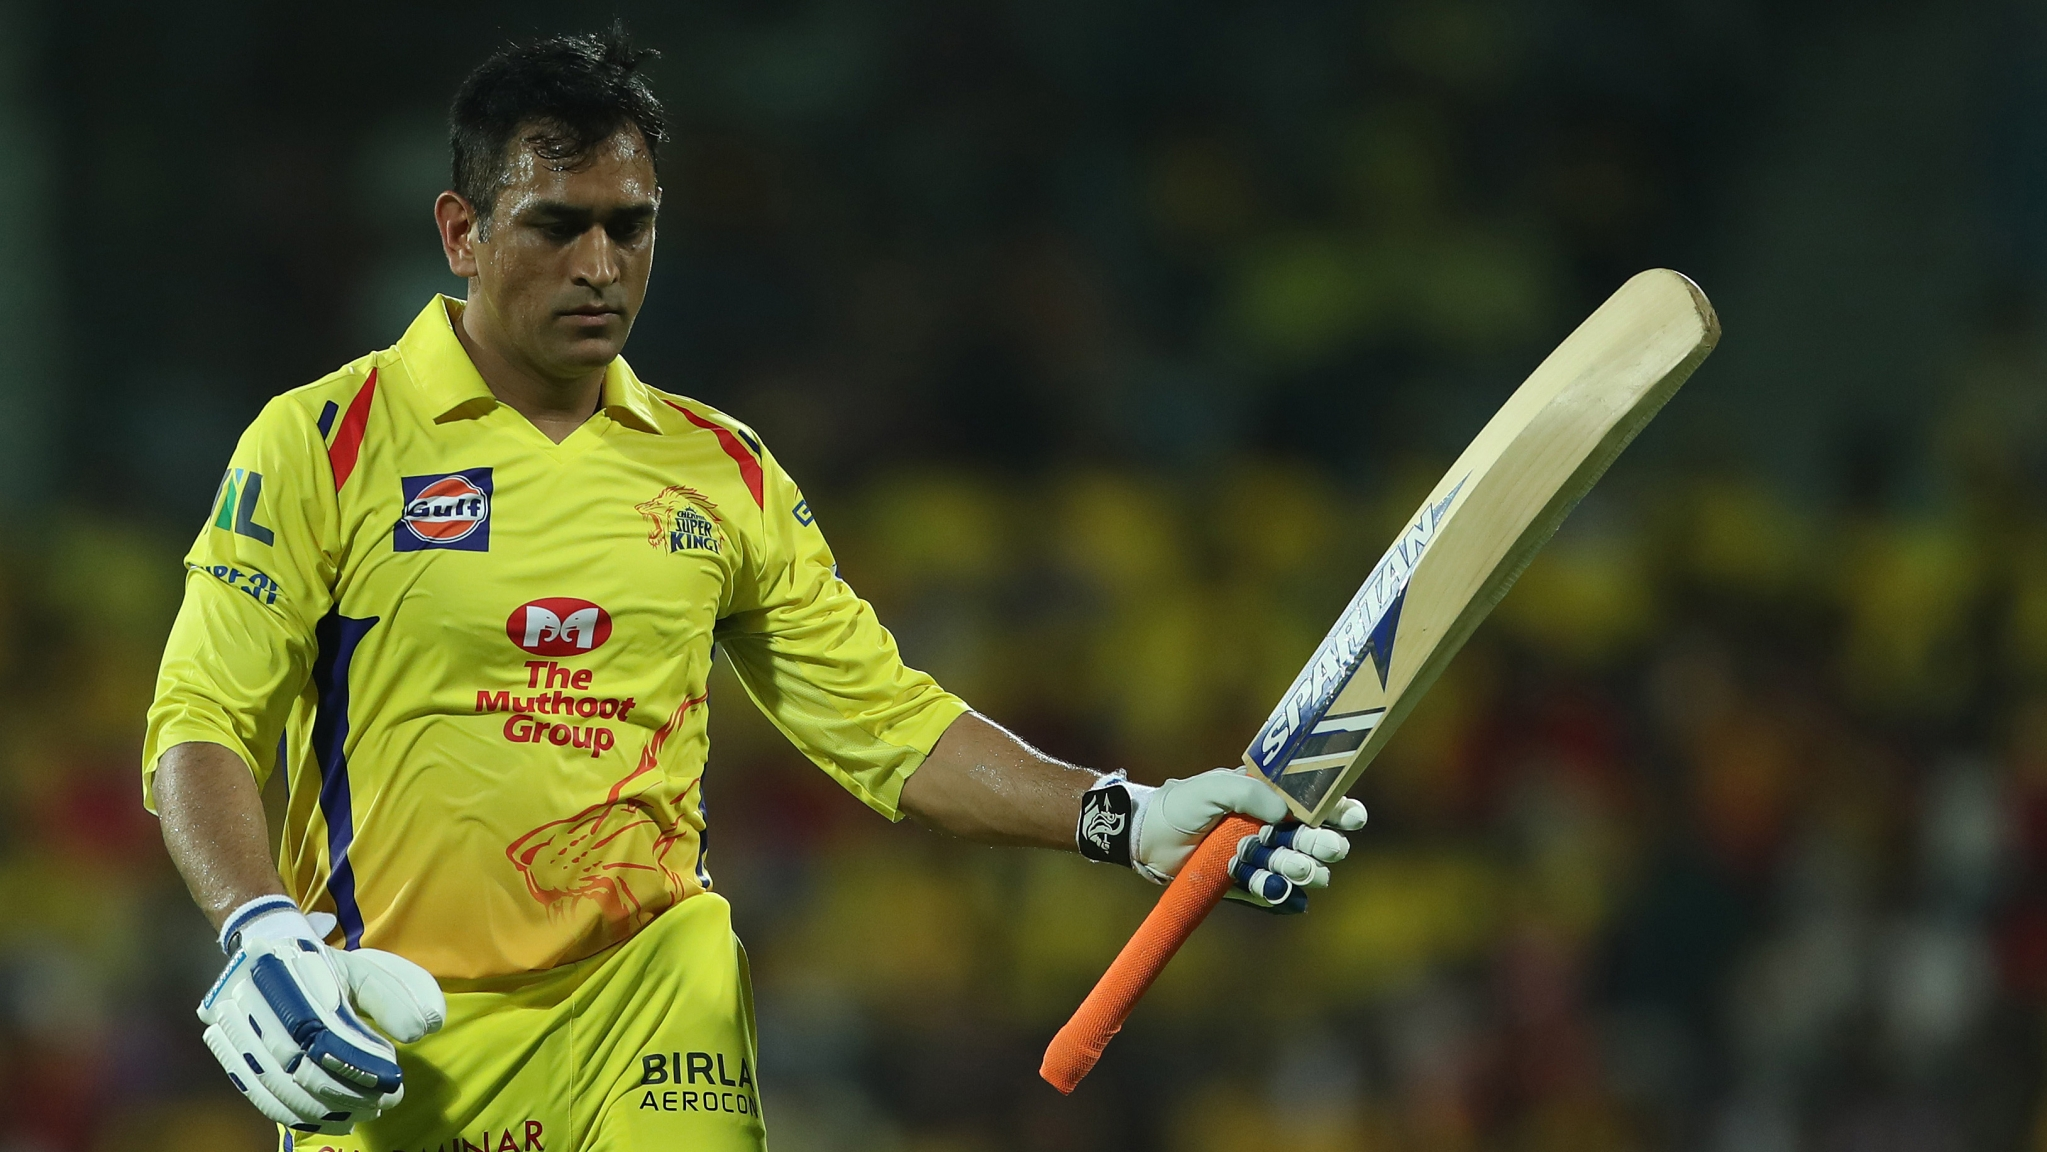 MS Dhoni Sets Record For Most Runs By An IPL Captain